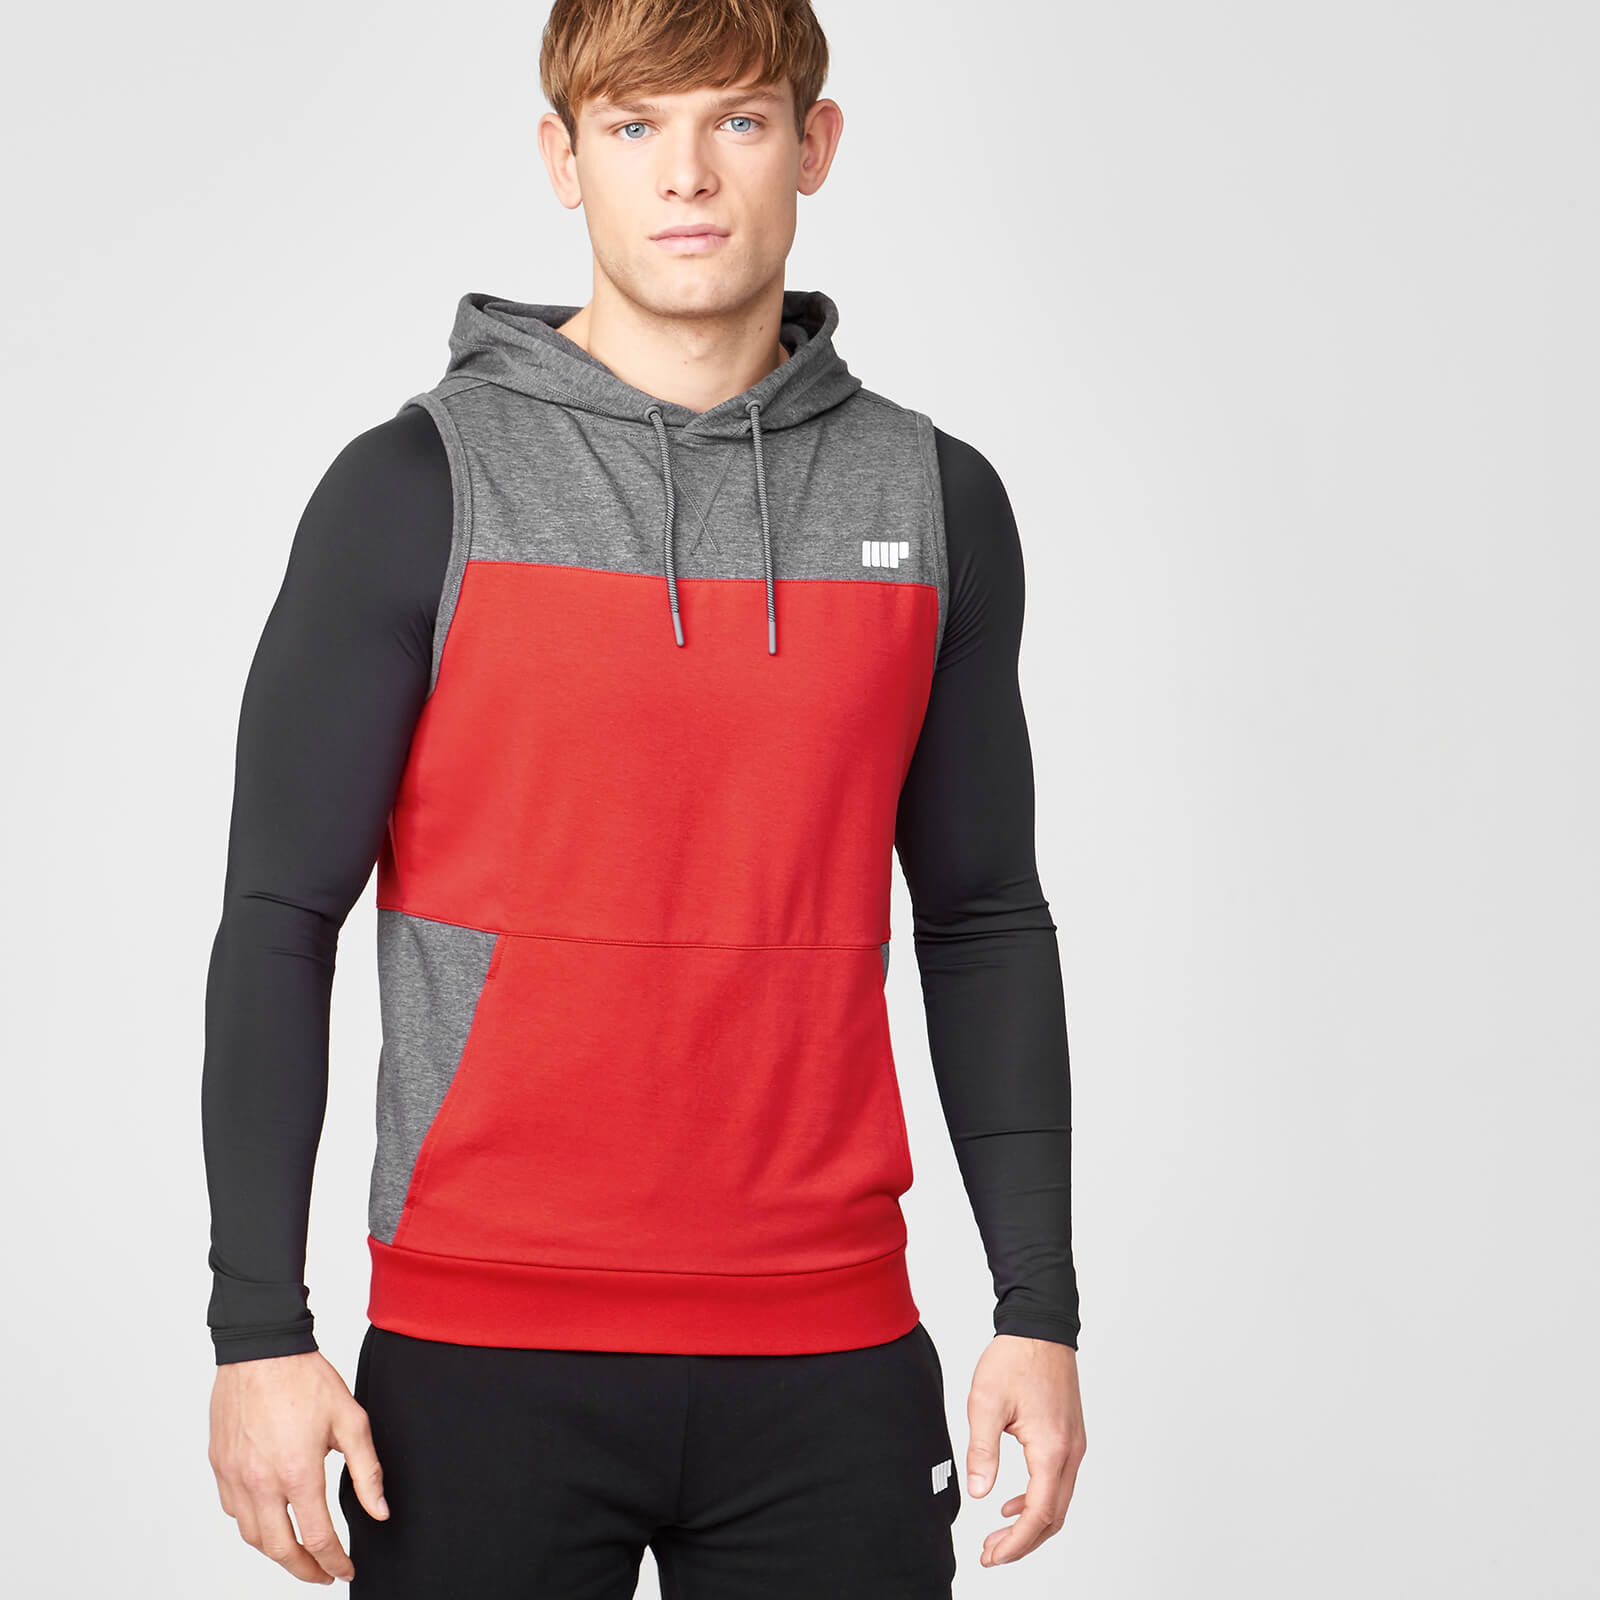 Superlite Sleeveless Zip-Up Hoodie - Red - XL